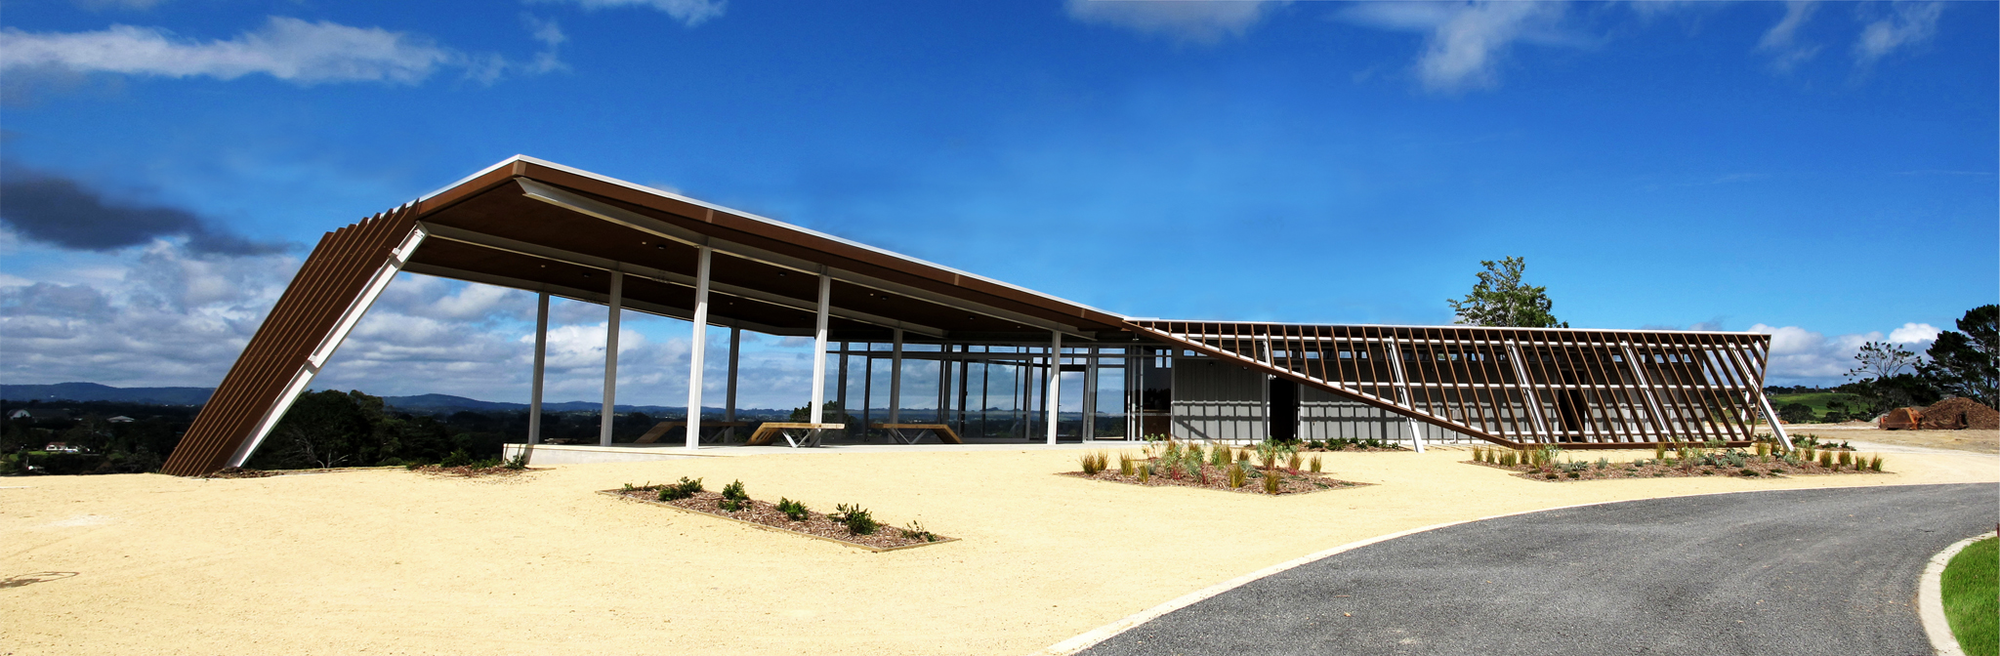 Visitor Centre for Equestrian and Mountain biking / Jasmax, © Mark Craven